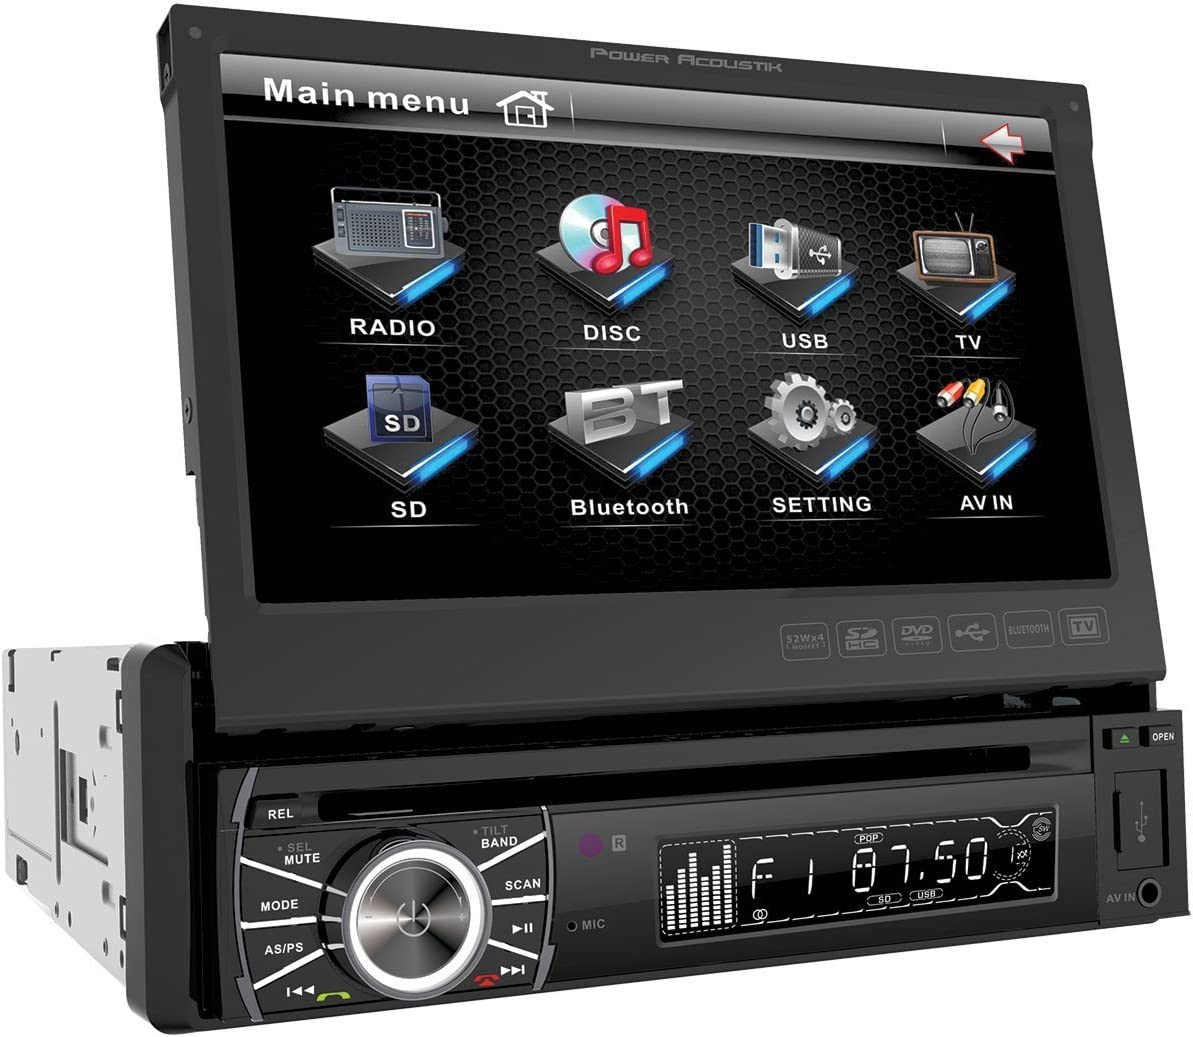 [WQZT_9871]  Amazon.com: Power Acoustik PTID-8920B In-Dash DVD AM/FM Receiver with  7-Inch Flip-Out Touchscreen Monitor and USB/SD Input: Car Electronics | Power Acoustik Dvd Wiring Diagram |  | Amazon.com